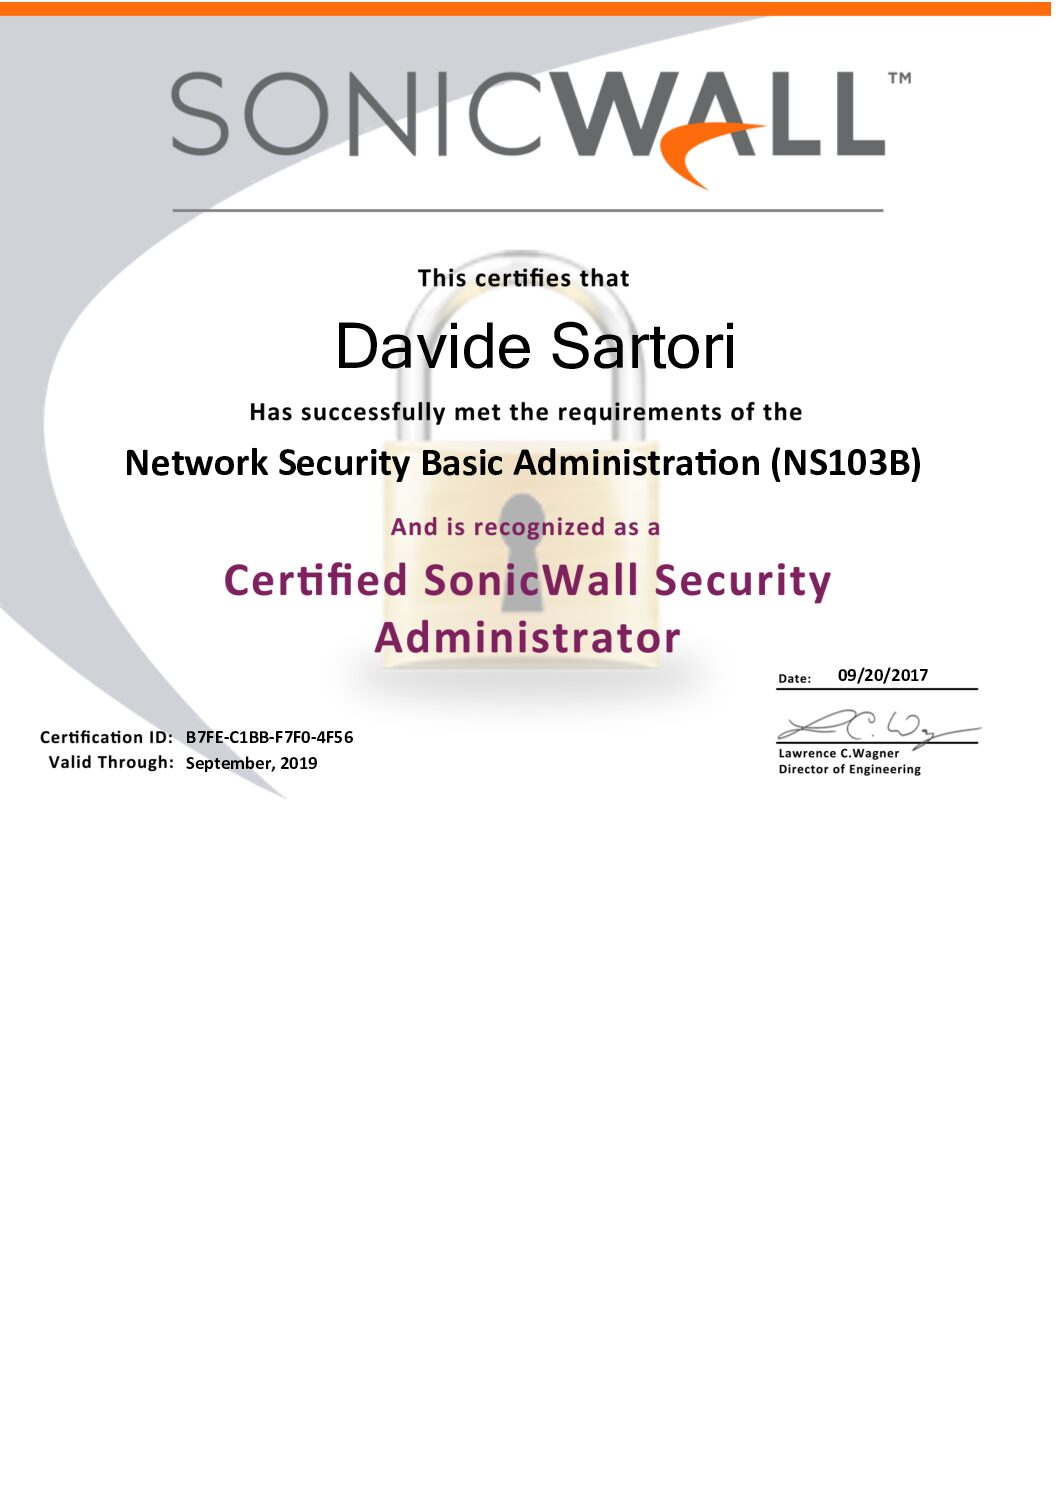 Sonicwall Certified Security Administrator